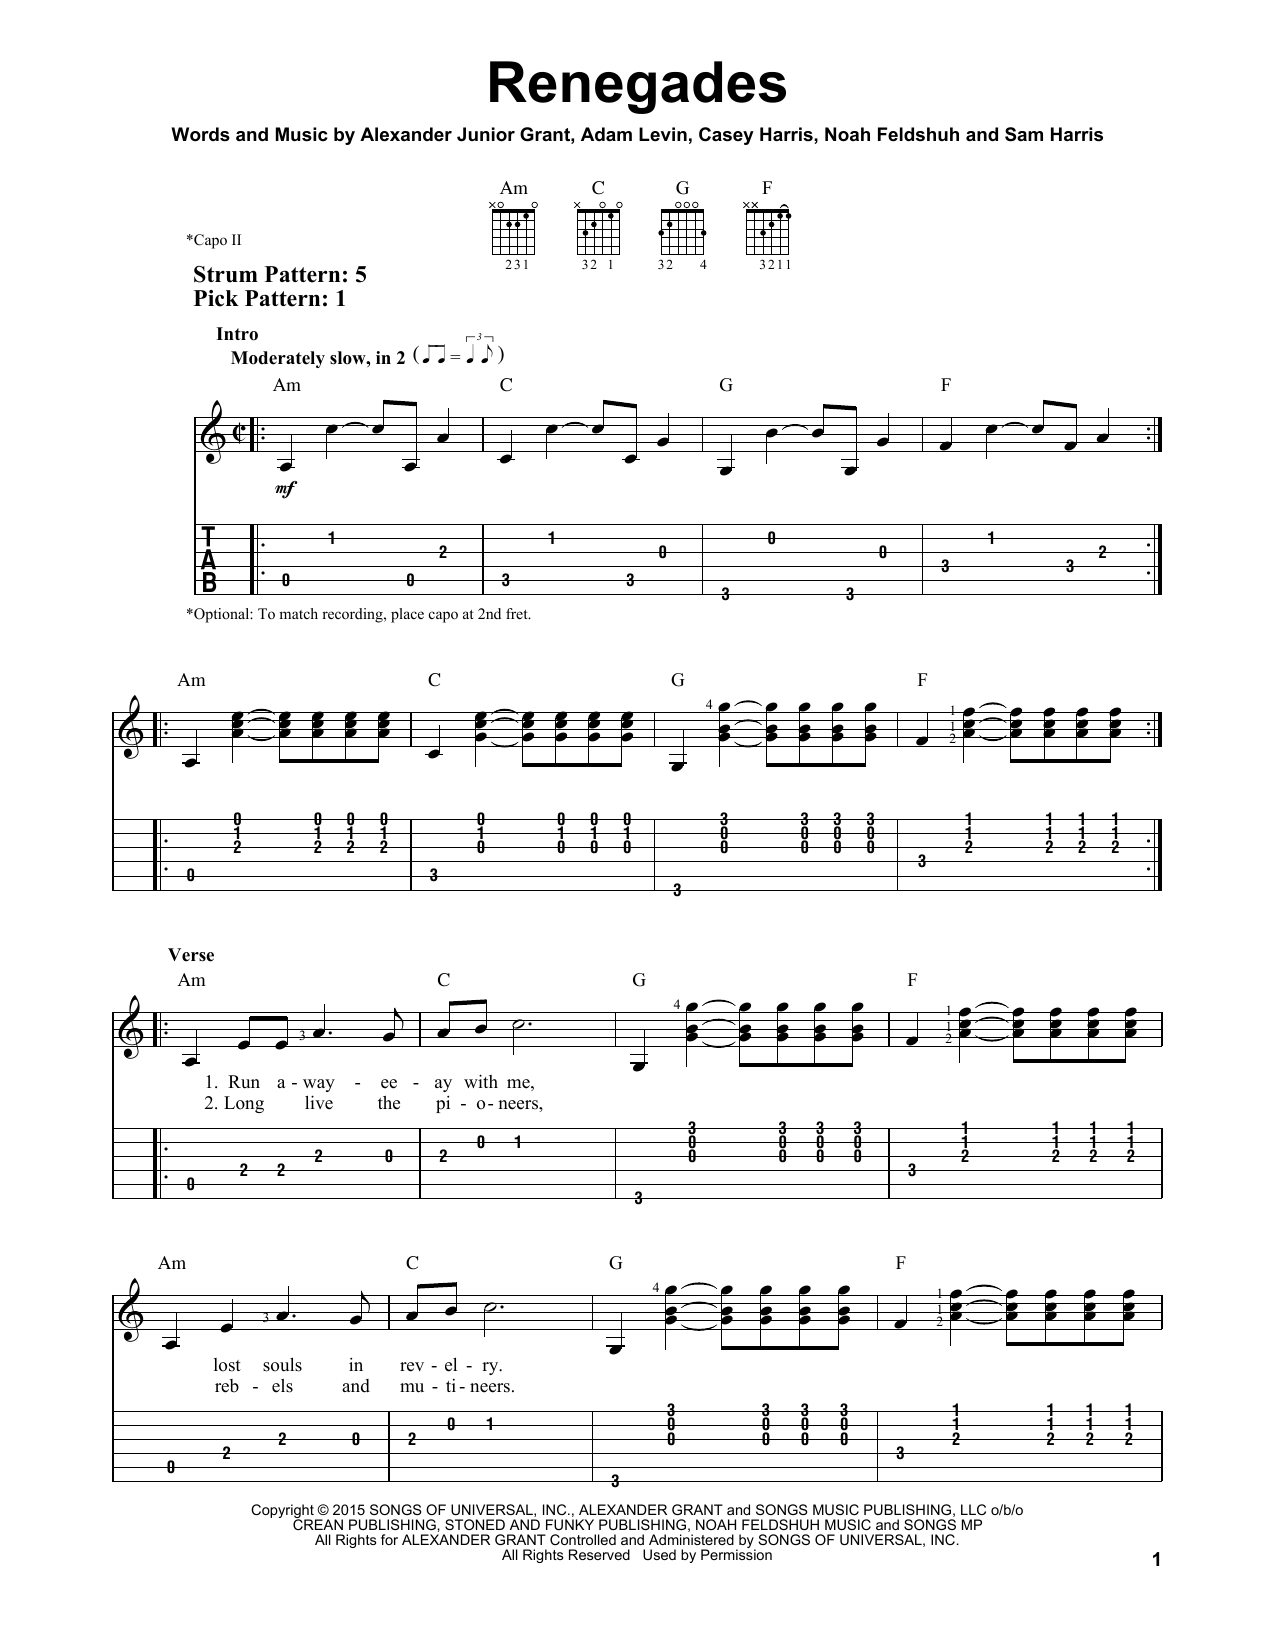 Sheet Music Digital Files To Print - Licensed X Ambassadors